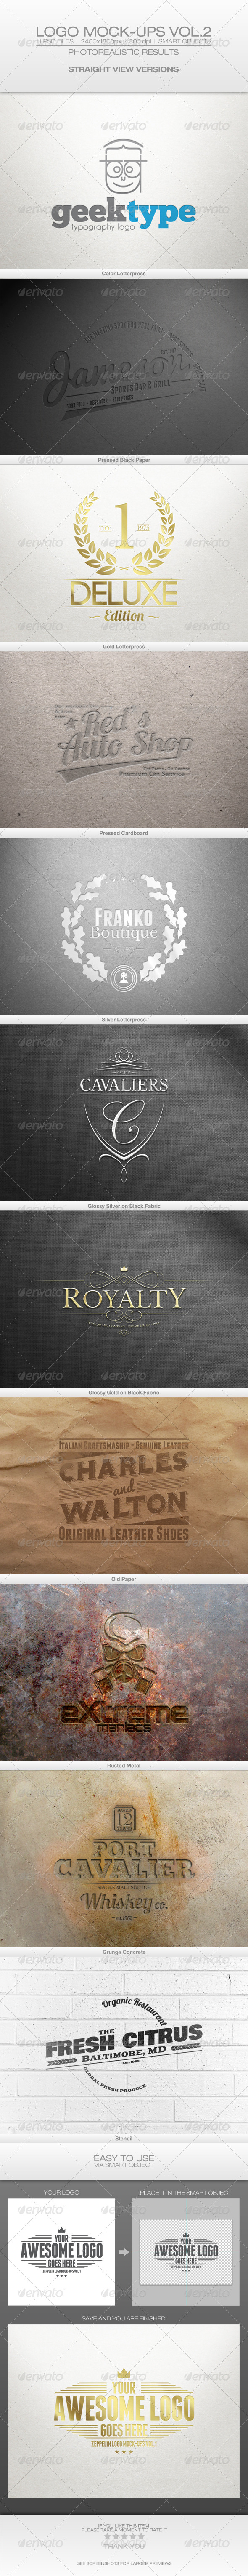 GraphicRiver Logo Mock-ups Vol.2 Straight View 6471076